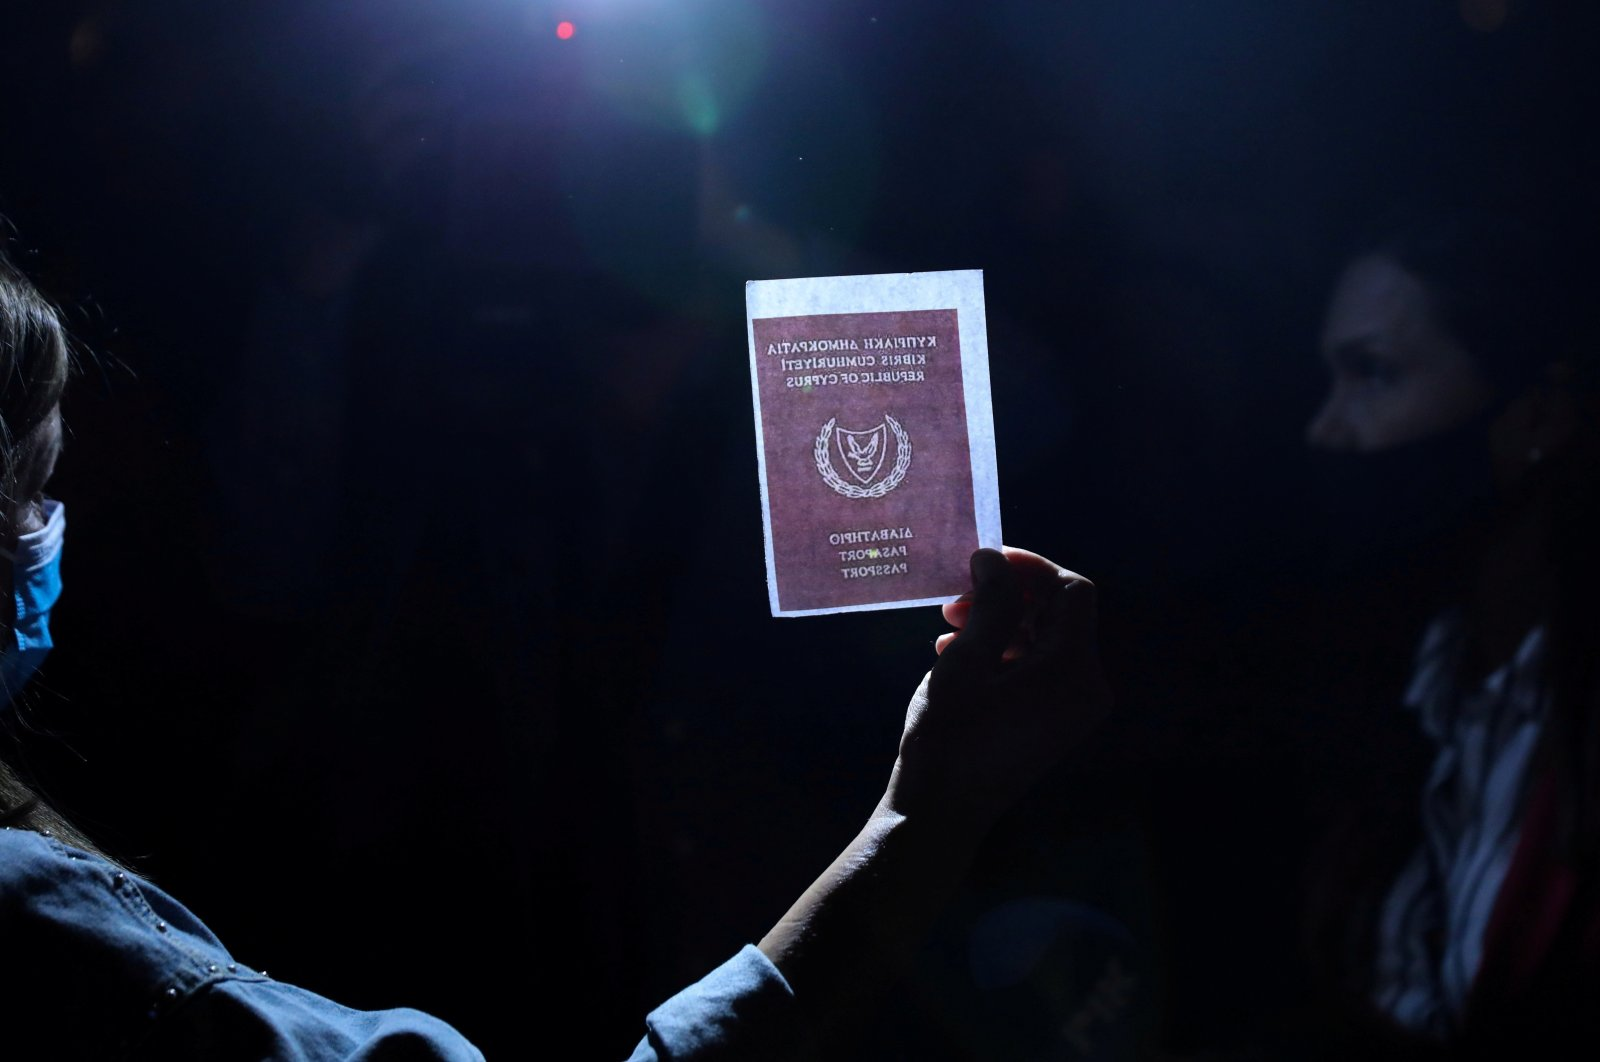 A person holds an image of a passport during a protest against corruption outside the Filoxenia Conference Center, currently hosting Cyprus parliament, in Nicosia, Cyprus Oct. 14, 2020. (Reuters Photo)